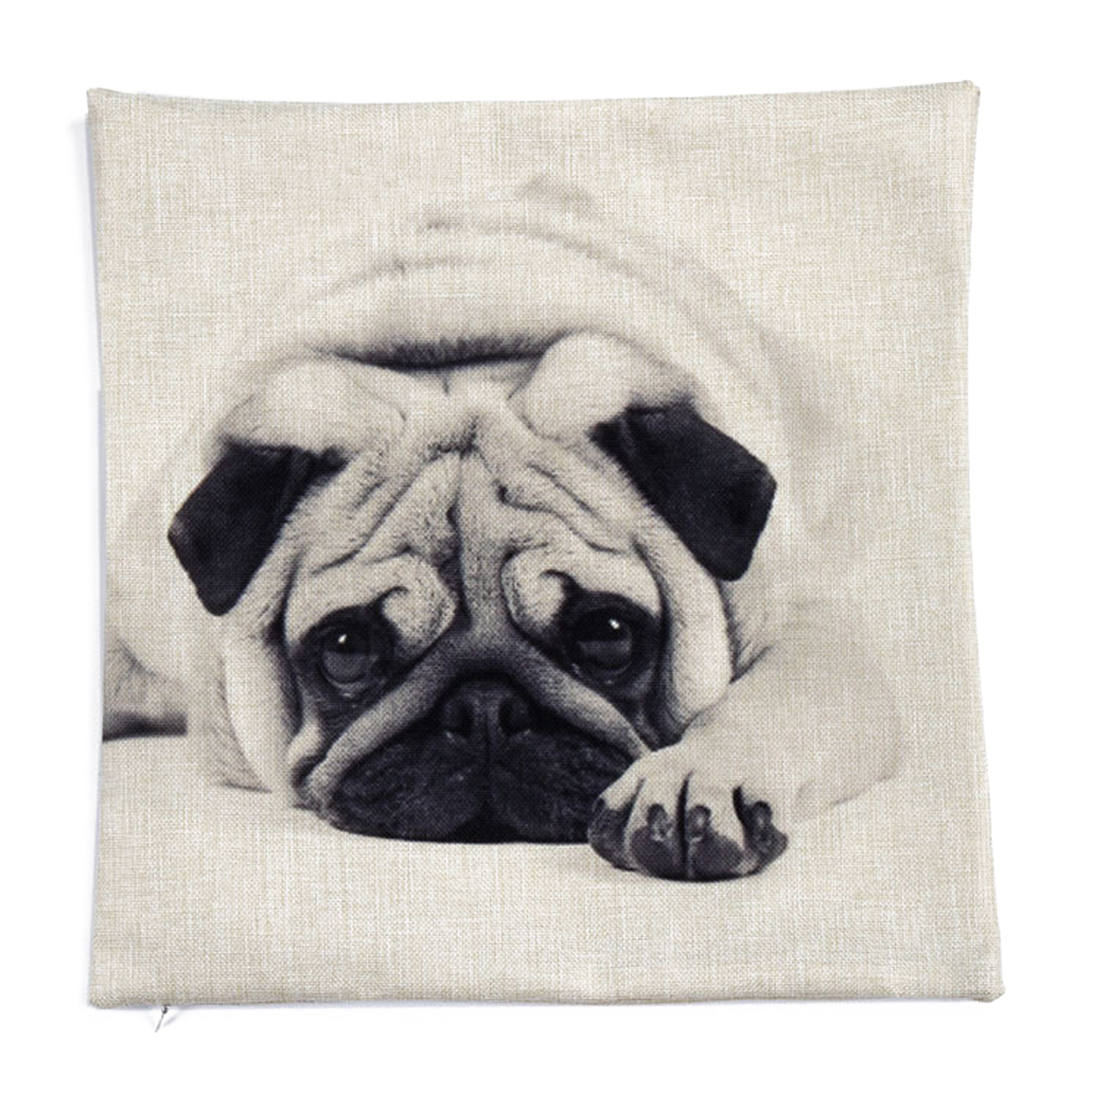 Piccocasa Home Decor Dog Print Waist Cushion Pillow Cover Case 45 x 45cm